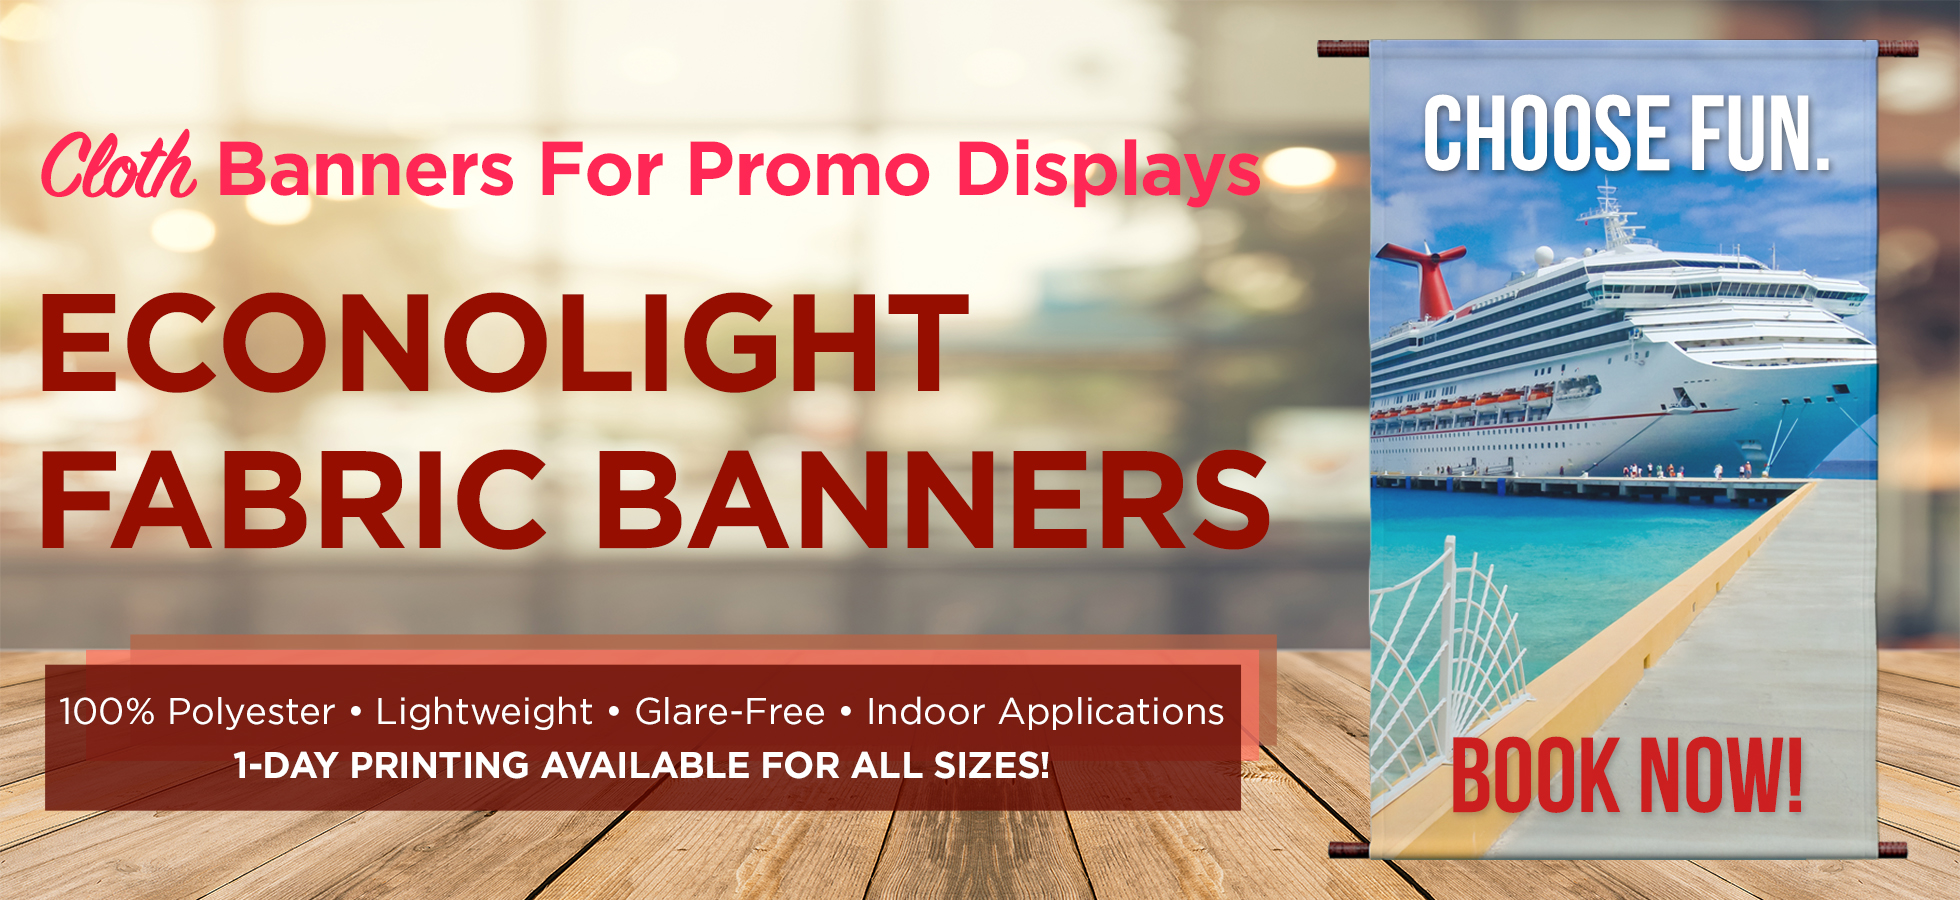 Bannerworld Com The Cheapest Fabric Banners And Vinyl Banners In Los Angeles 2 00 Sq Ft